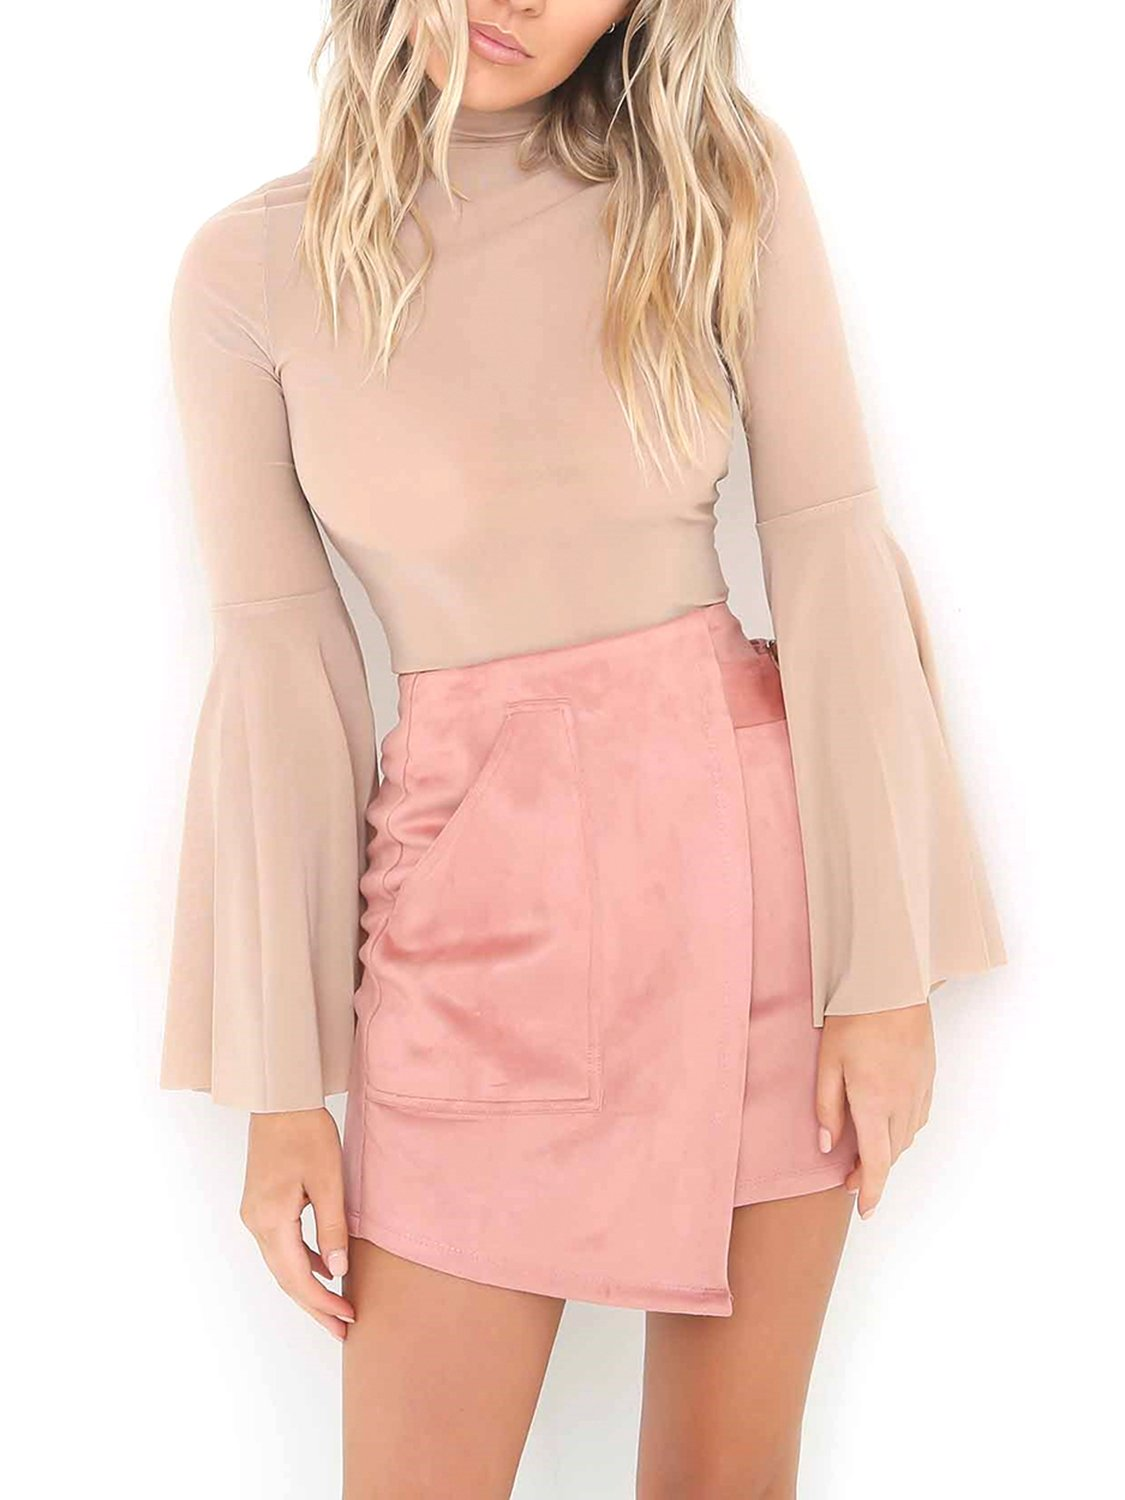 Simplee Women's Faux Suede Irregular High Waist Bodycon Mini Skirt With Pocket, Pink, 4/6, Small